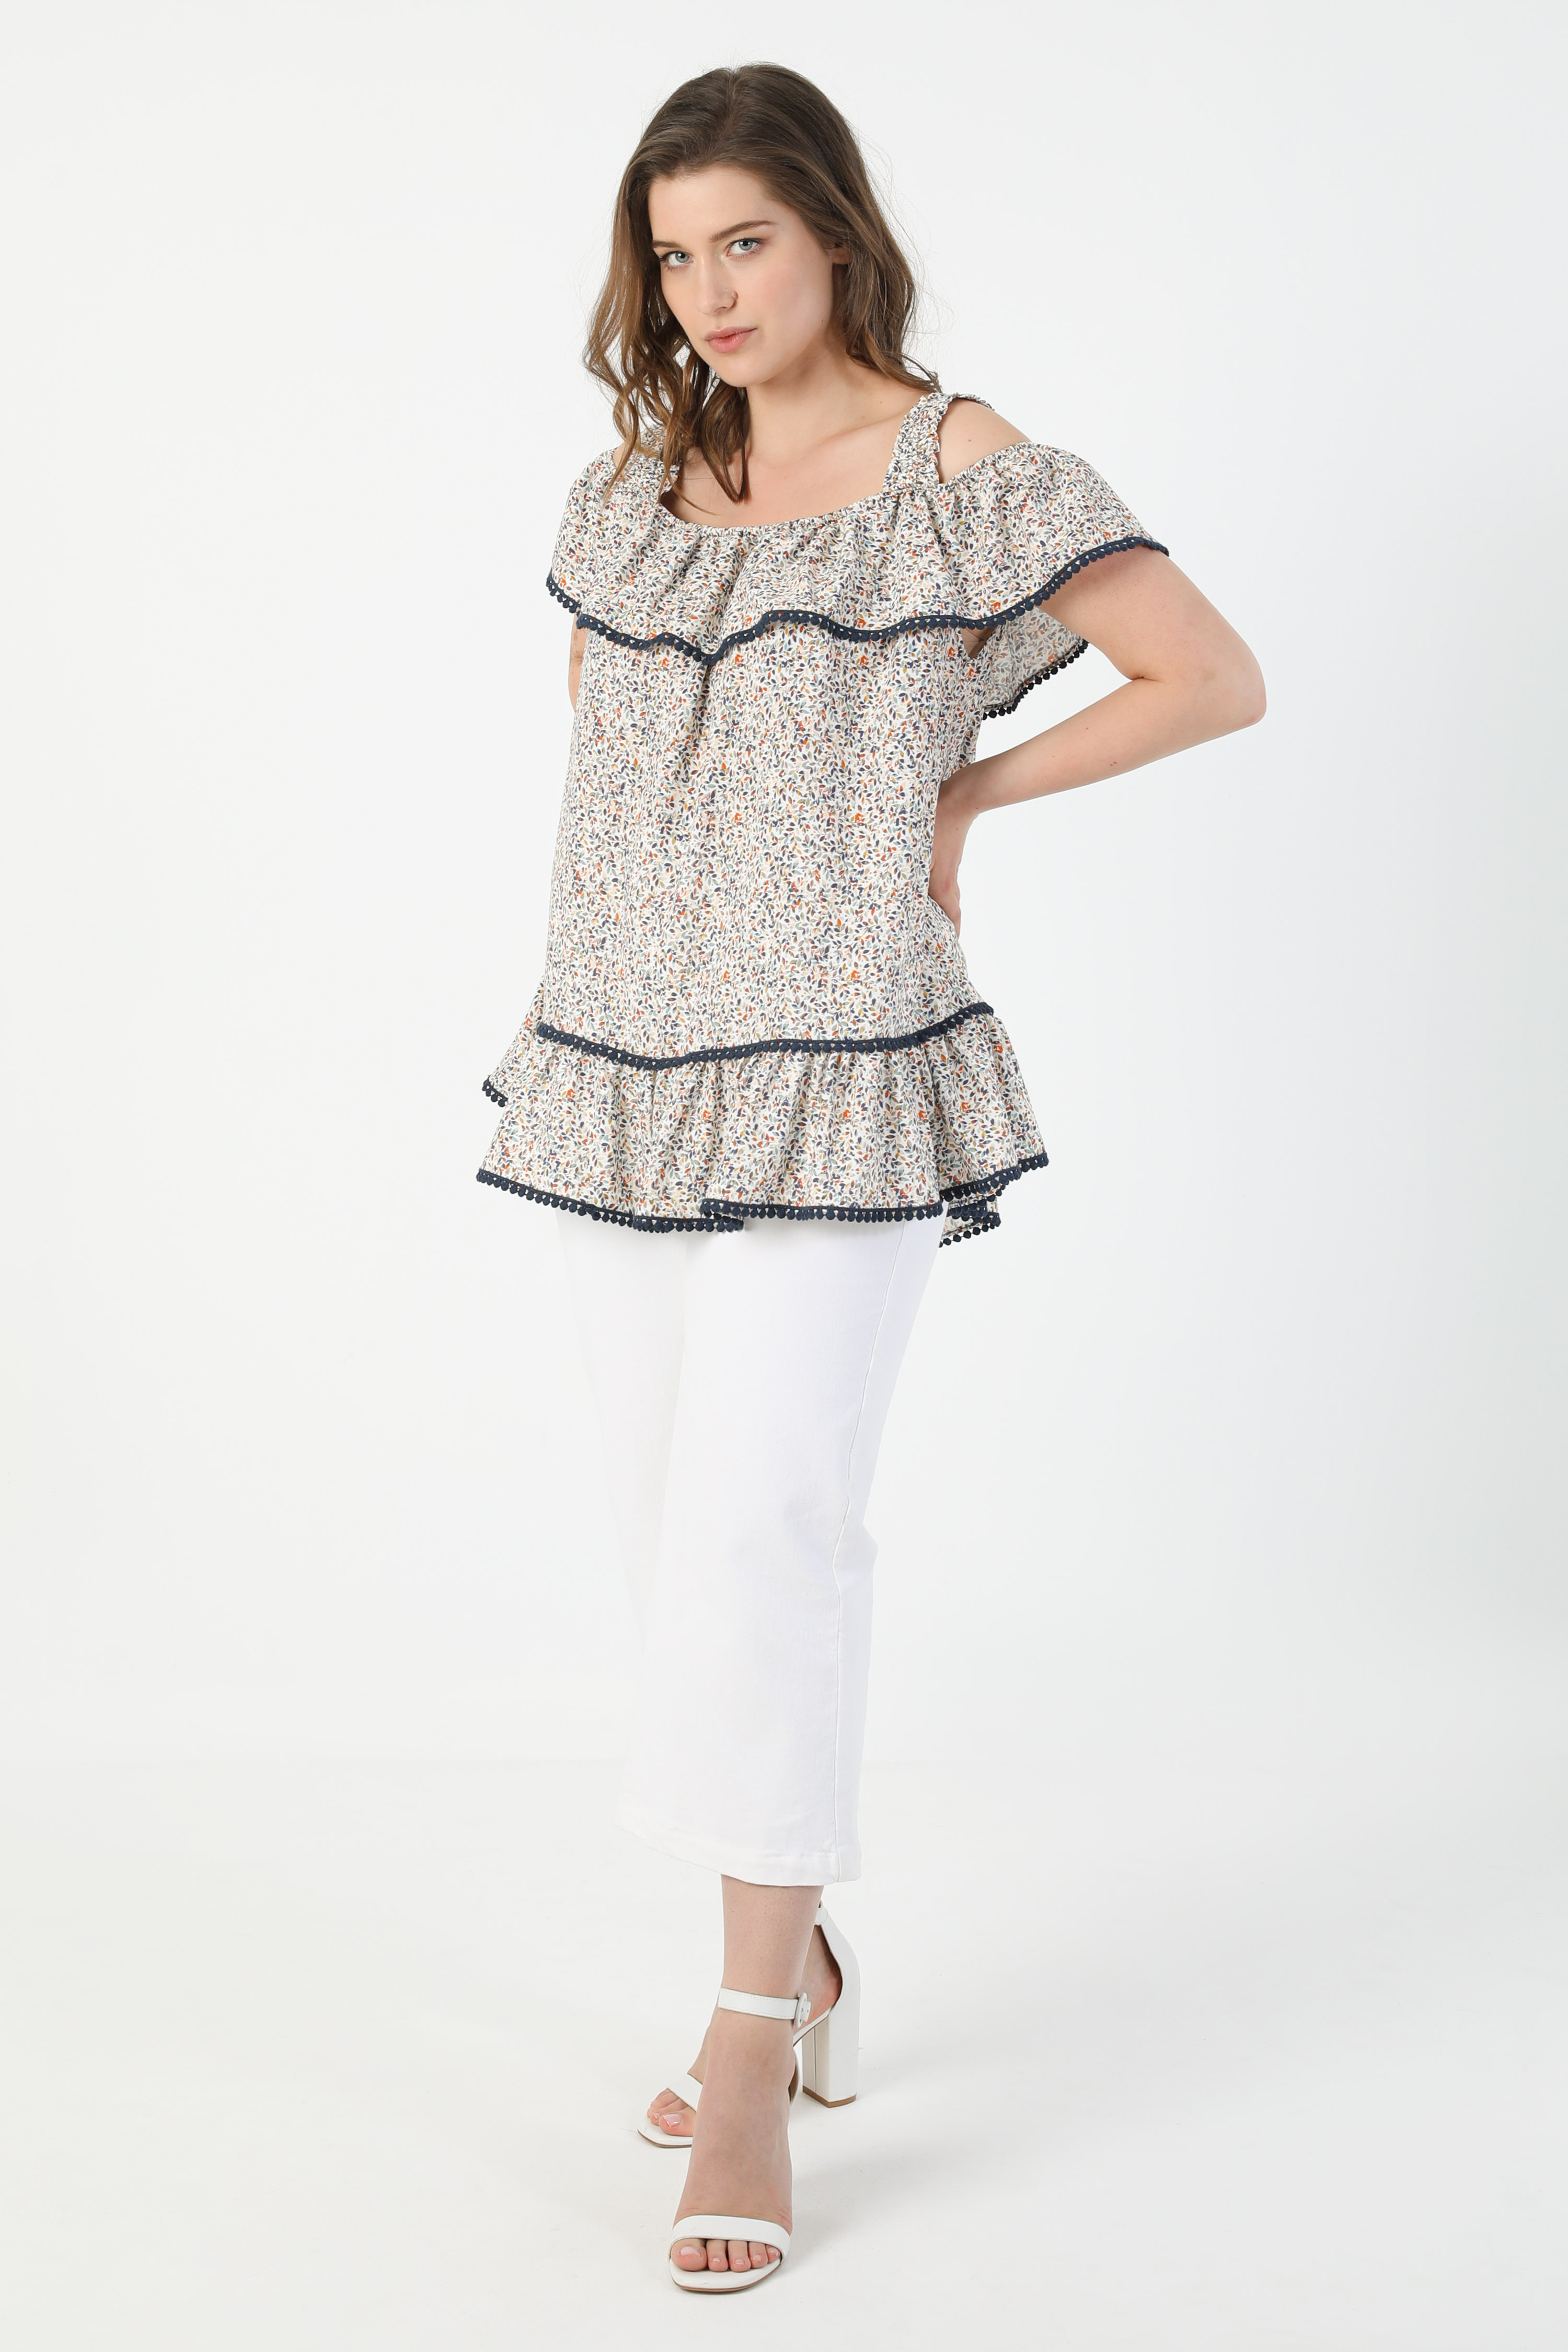 Printed blouse with suspenders (shipping May 5/10)